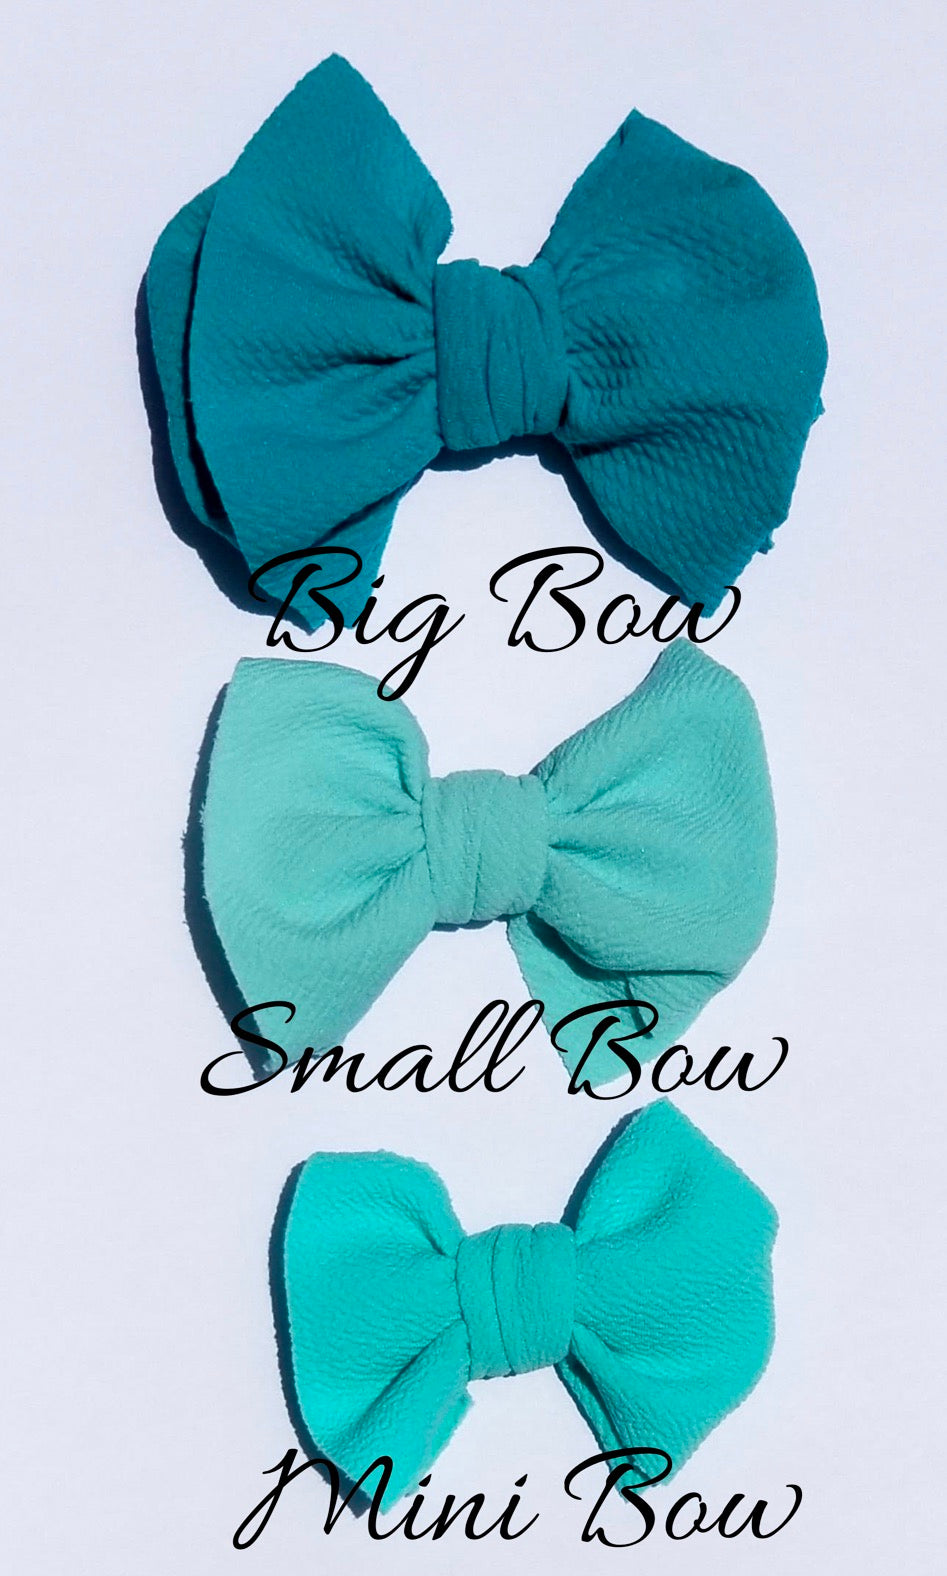 Small Bow(solids)